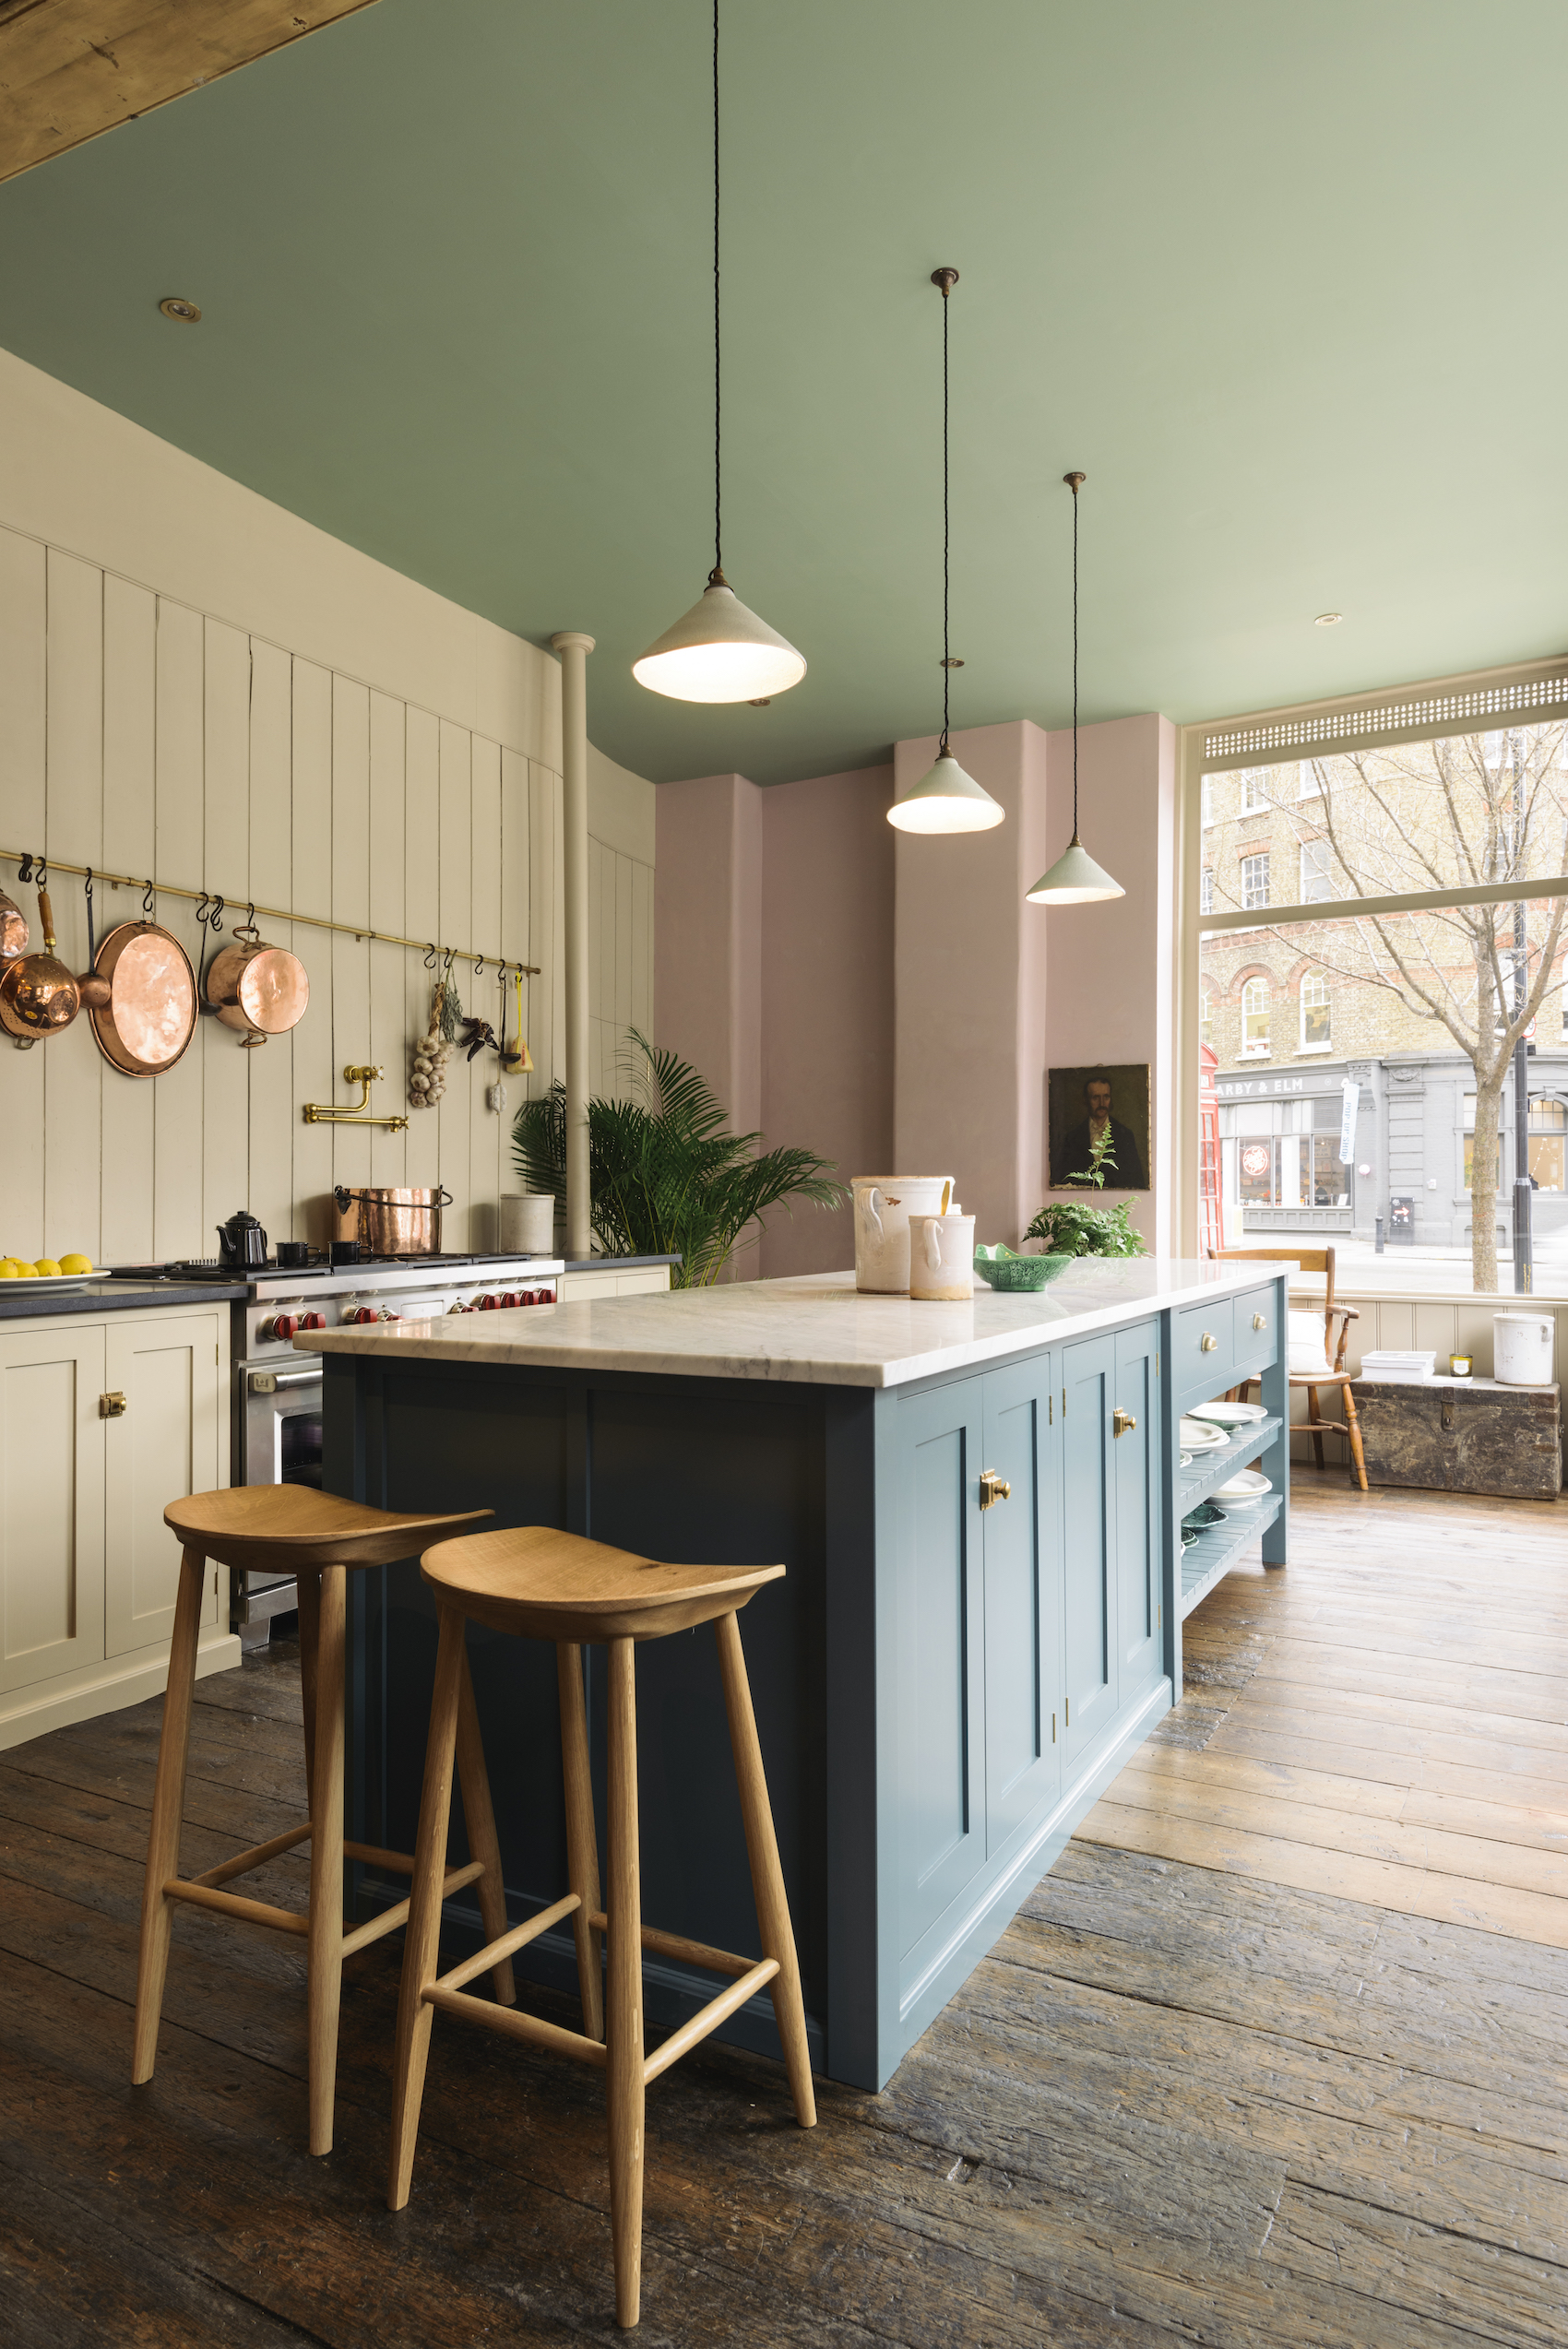 50 Dream Kitchens That Will Leave You Breathless The Cottage Market